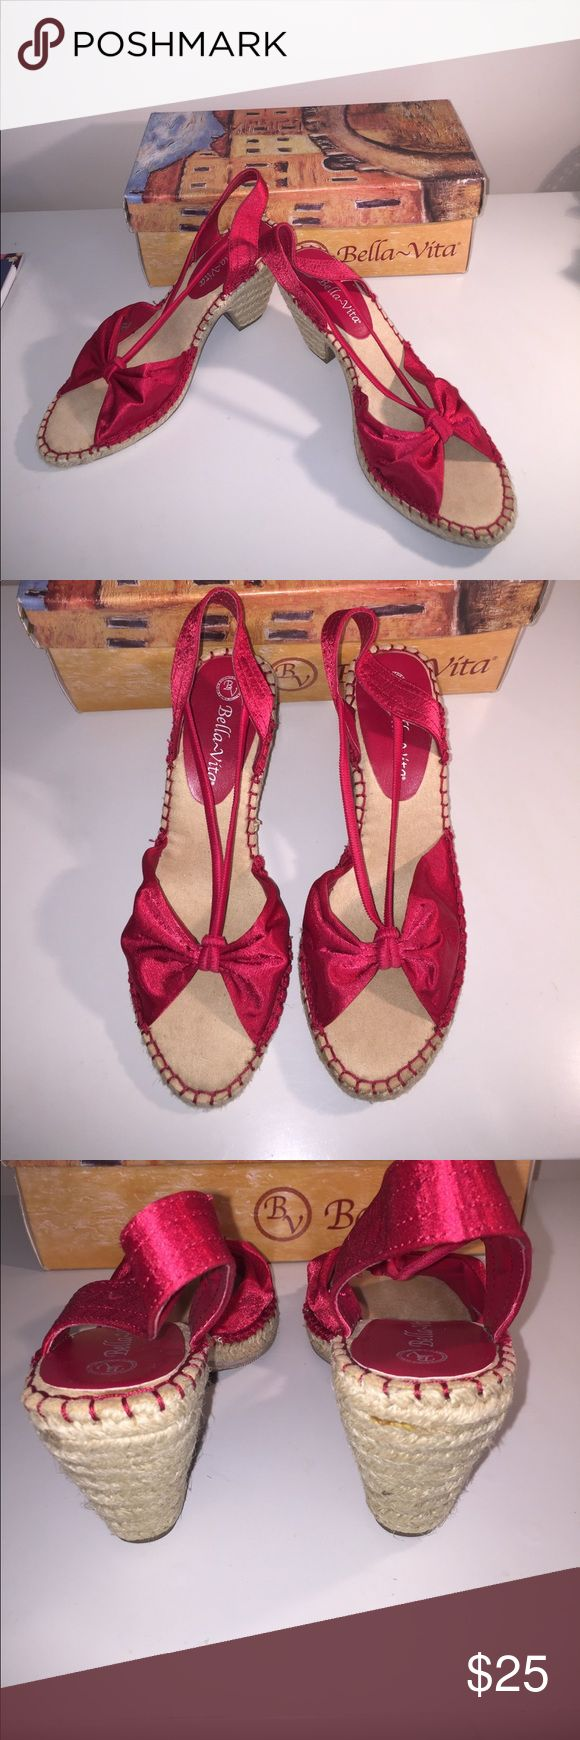 NEW Sz 8 1/2 Bella Vita Red Satin & Jute NEW Without Tag Sz 8 1/2 Bella Vita Red Satin & Jute Side & Heel Tag says 9 N Fits smaller Bella Vita Shoes Sandals